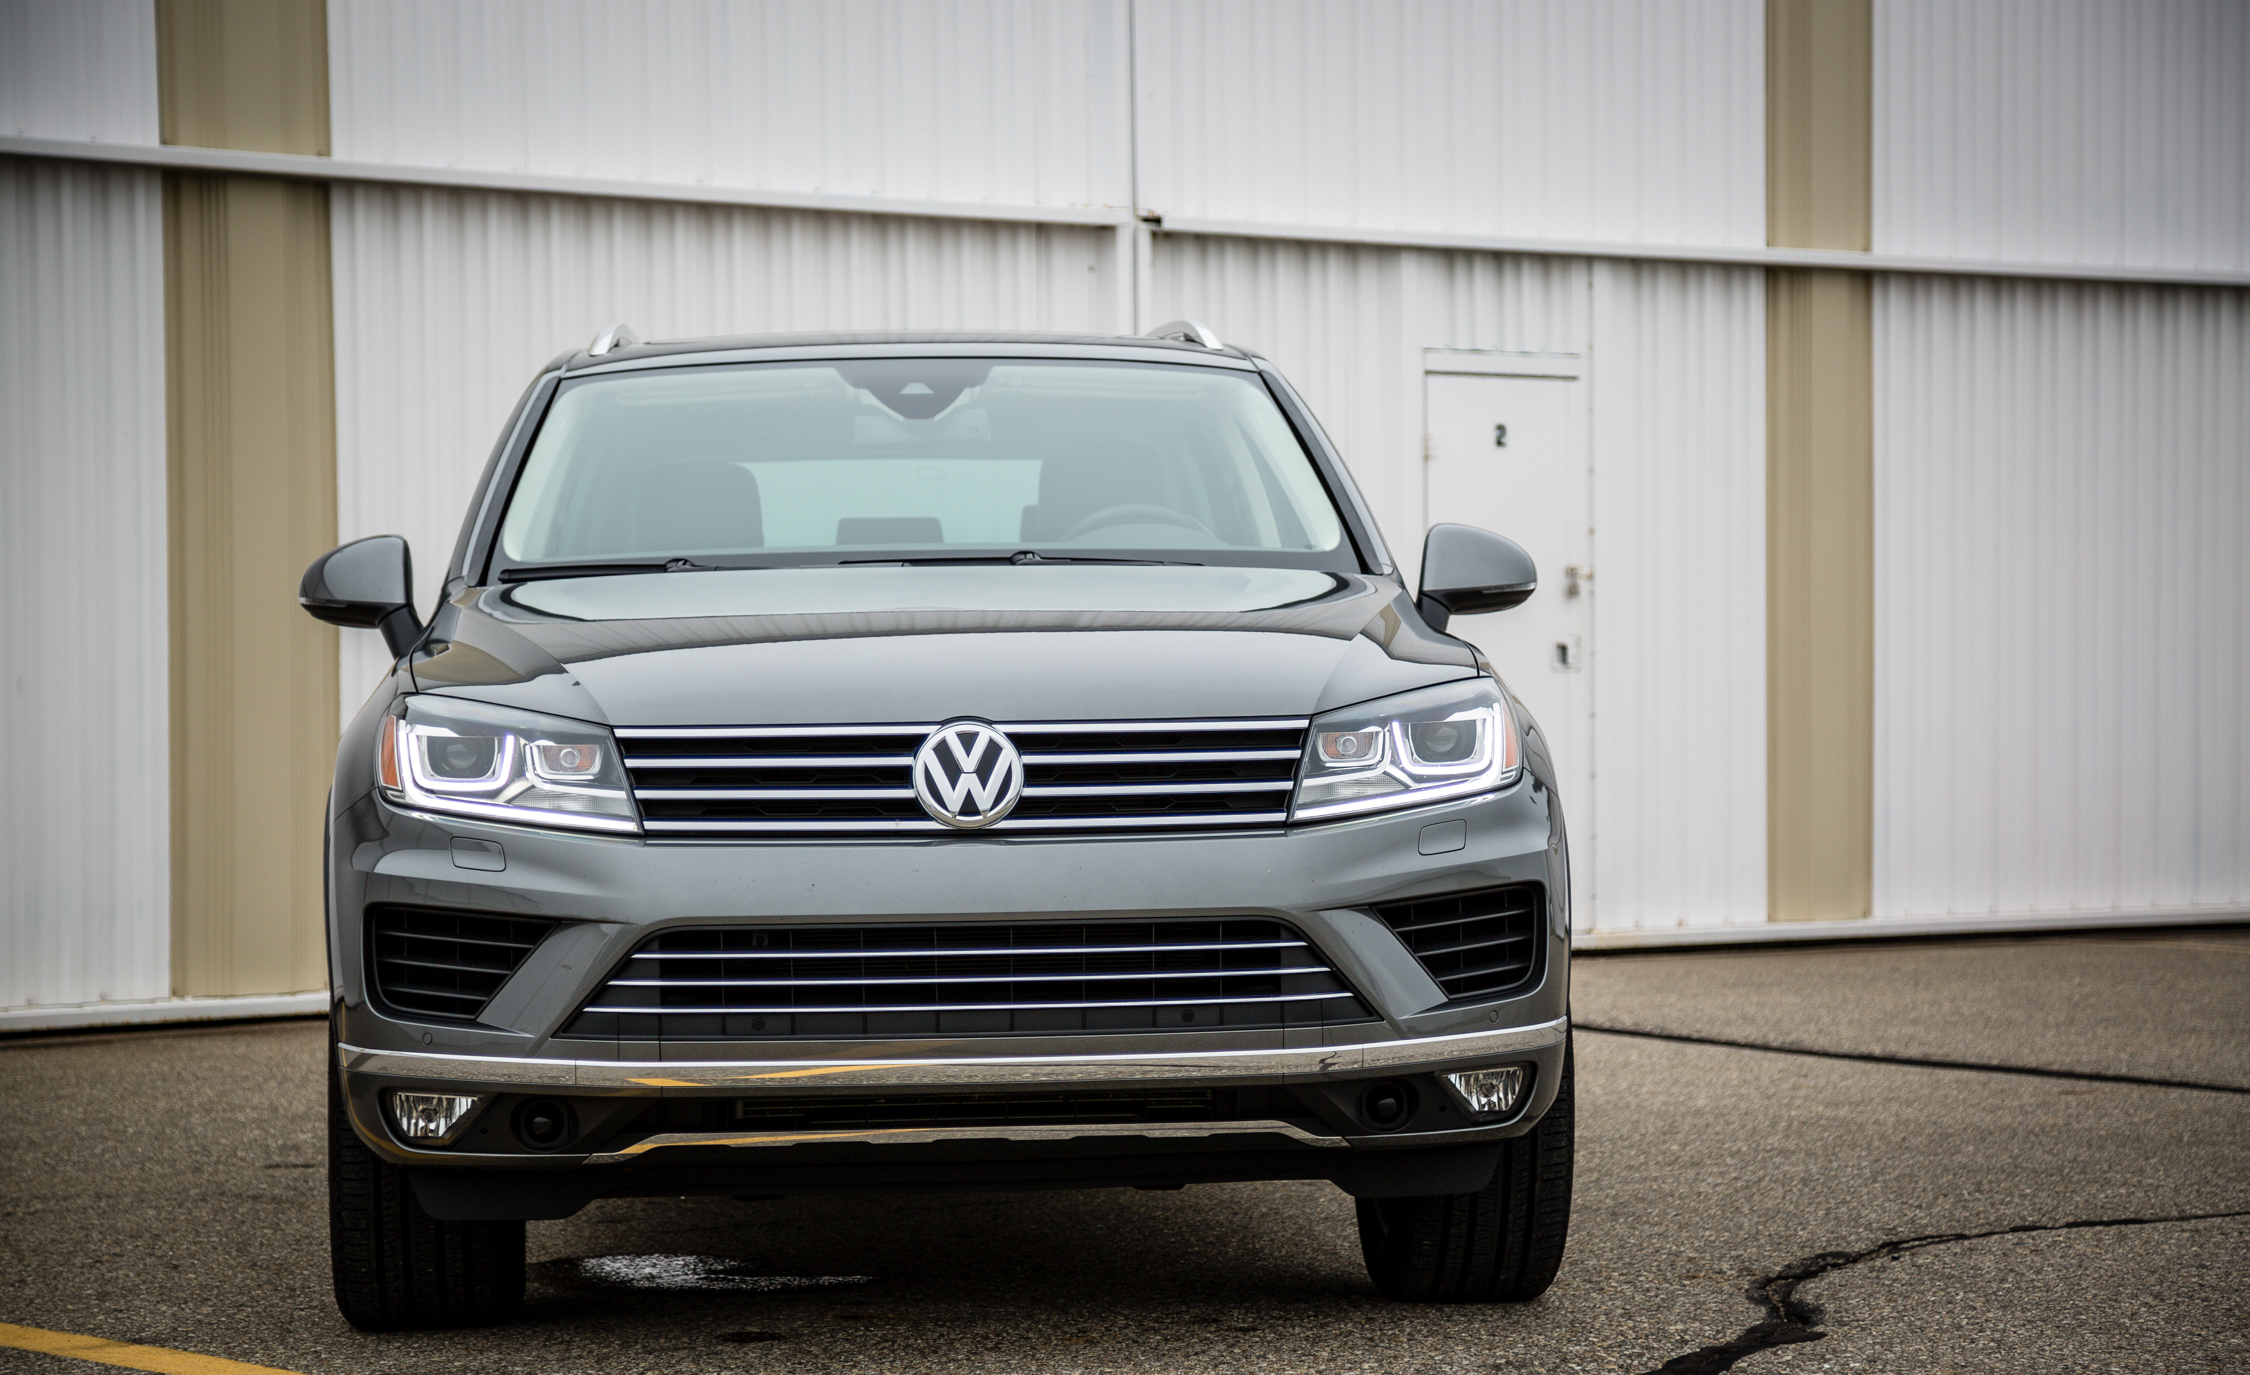 2016 Volkswagen Touareg Exterior Front End (View 14 of 16)